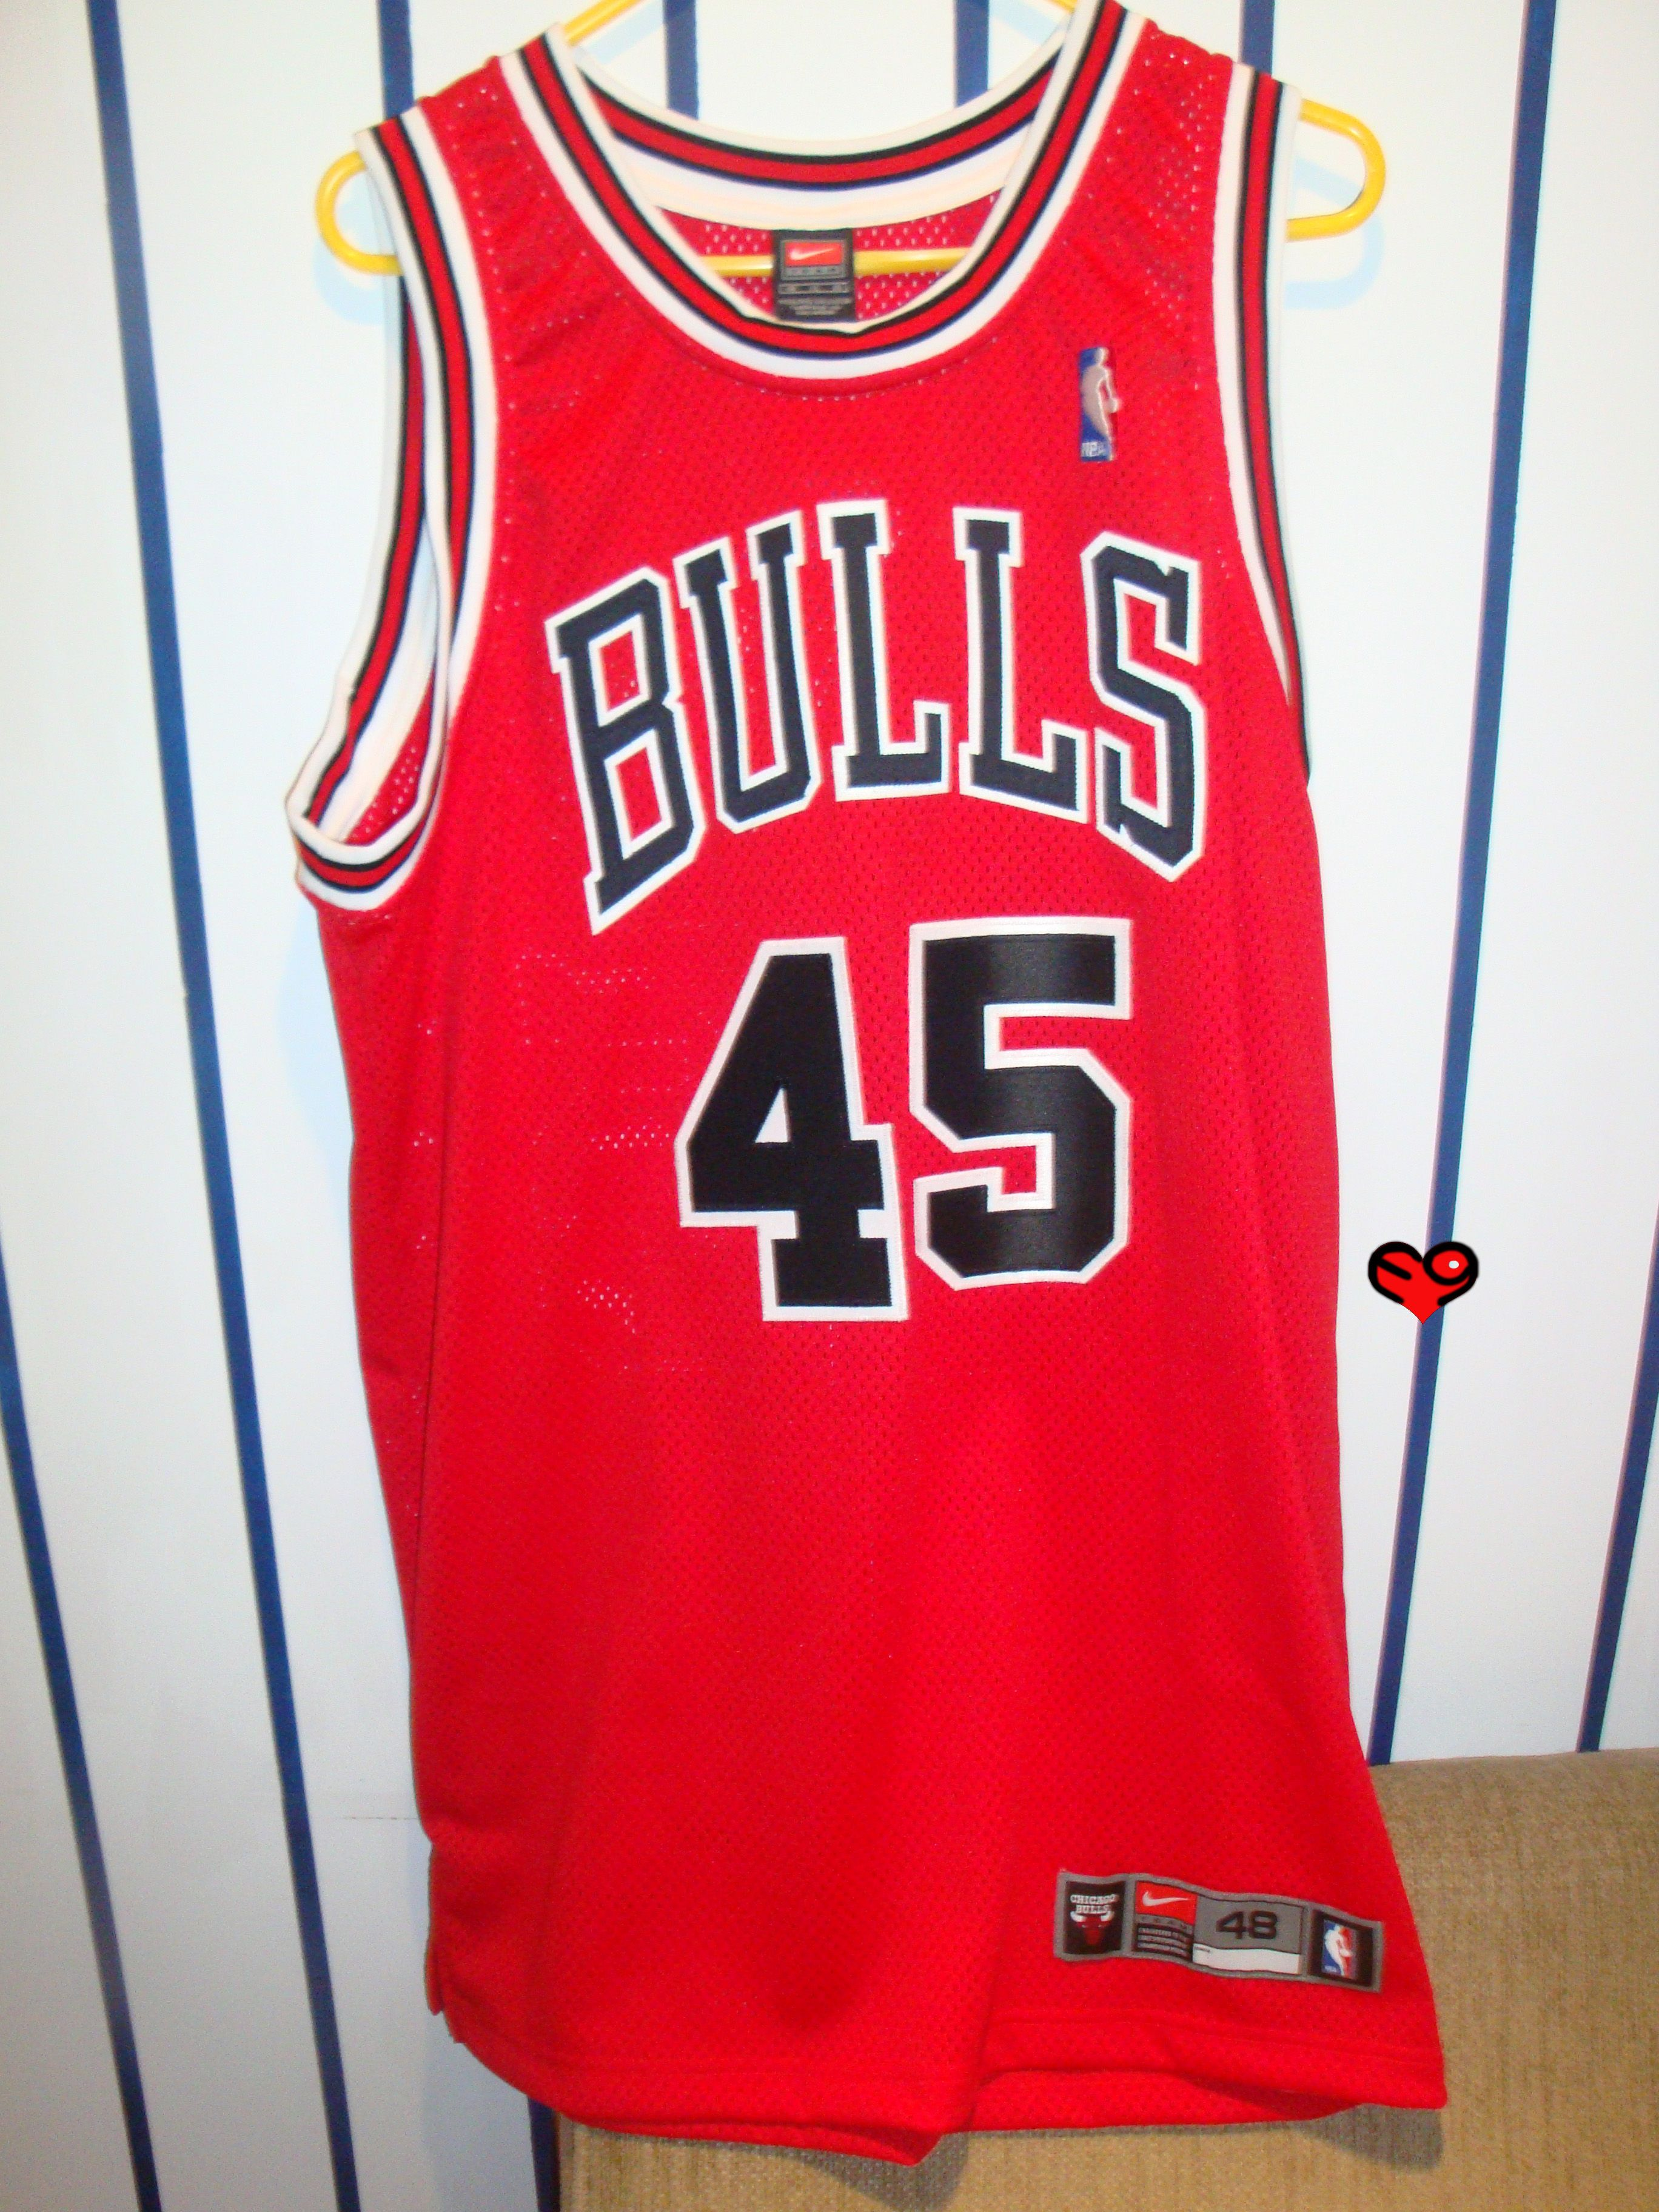 separation shoes a7662 37ee9 Jordan #45 Authentic Nike Bulls Road Jersey (front ...